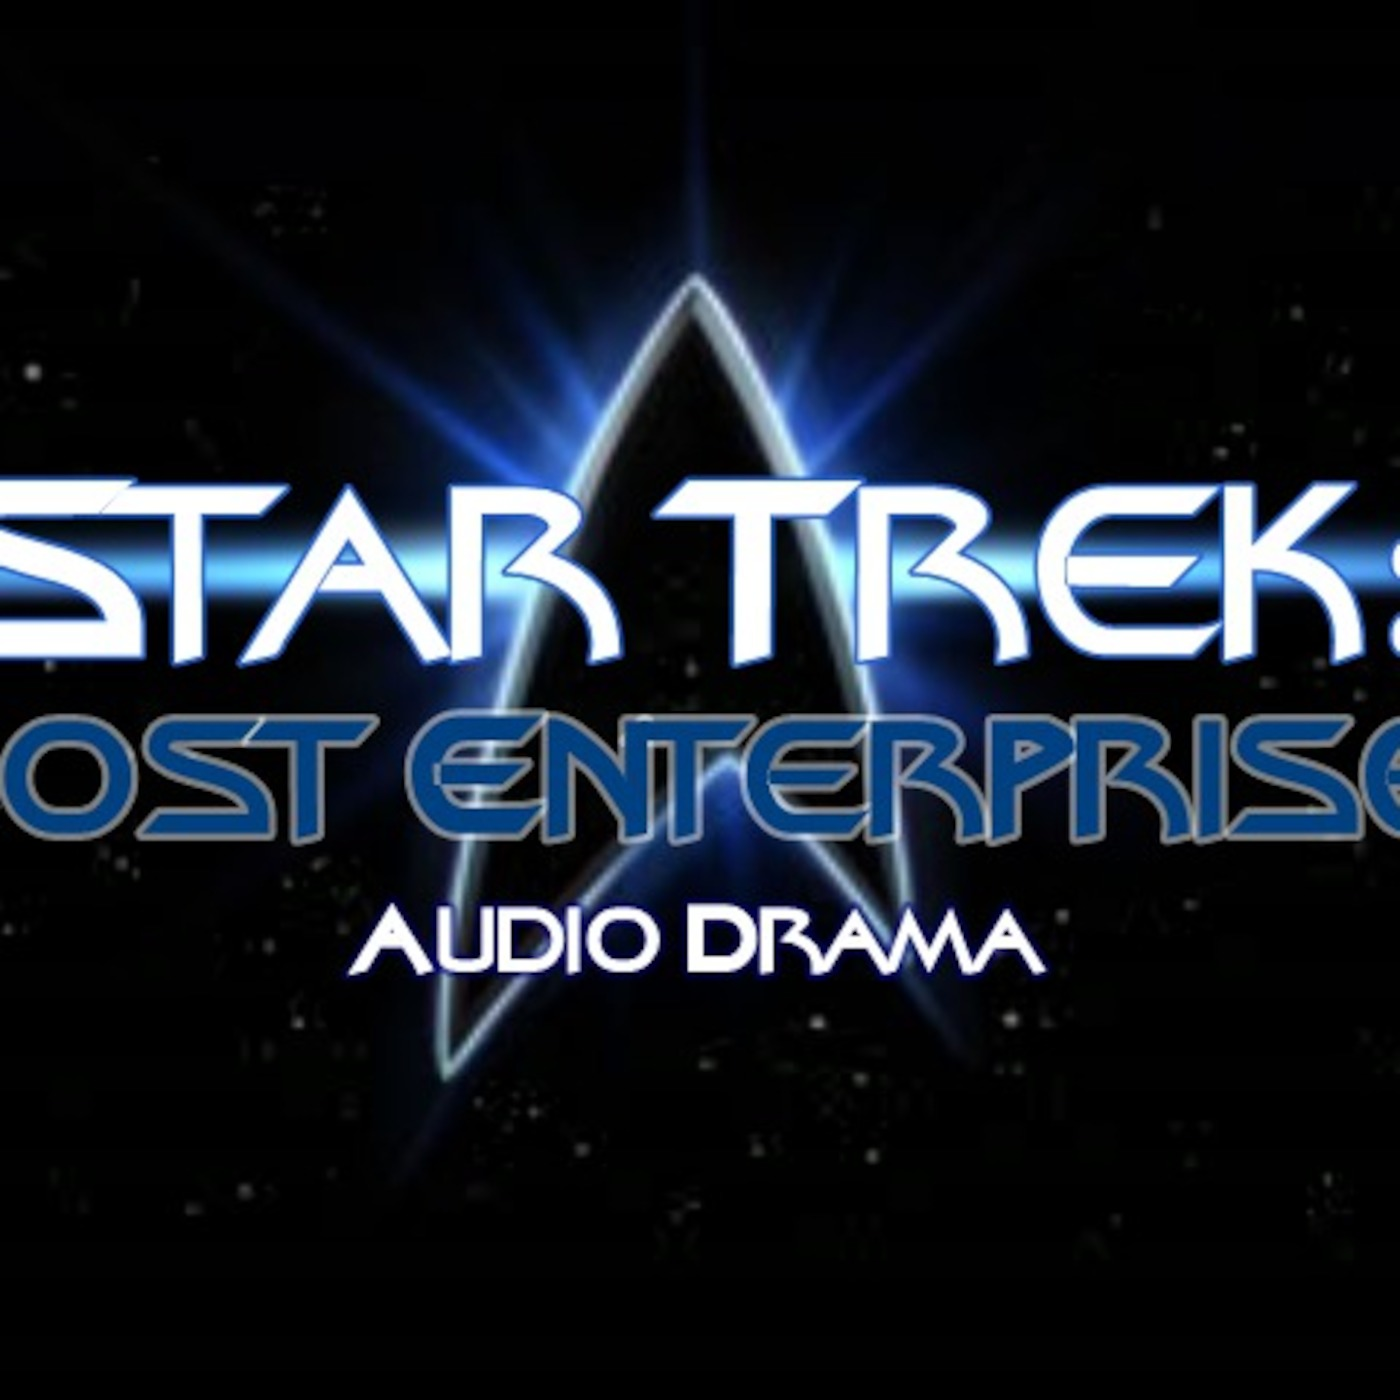 Star Trek: Lost Enterprise